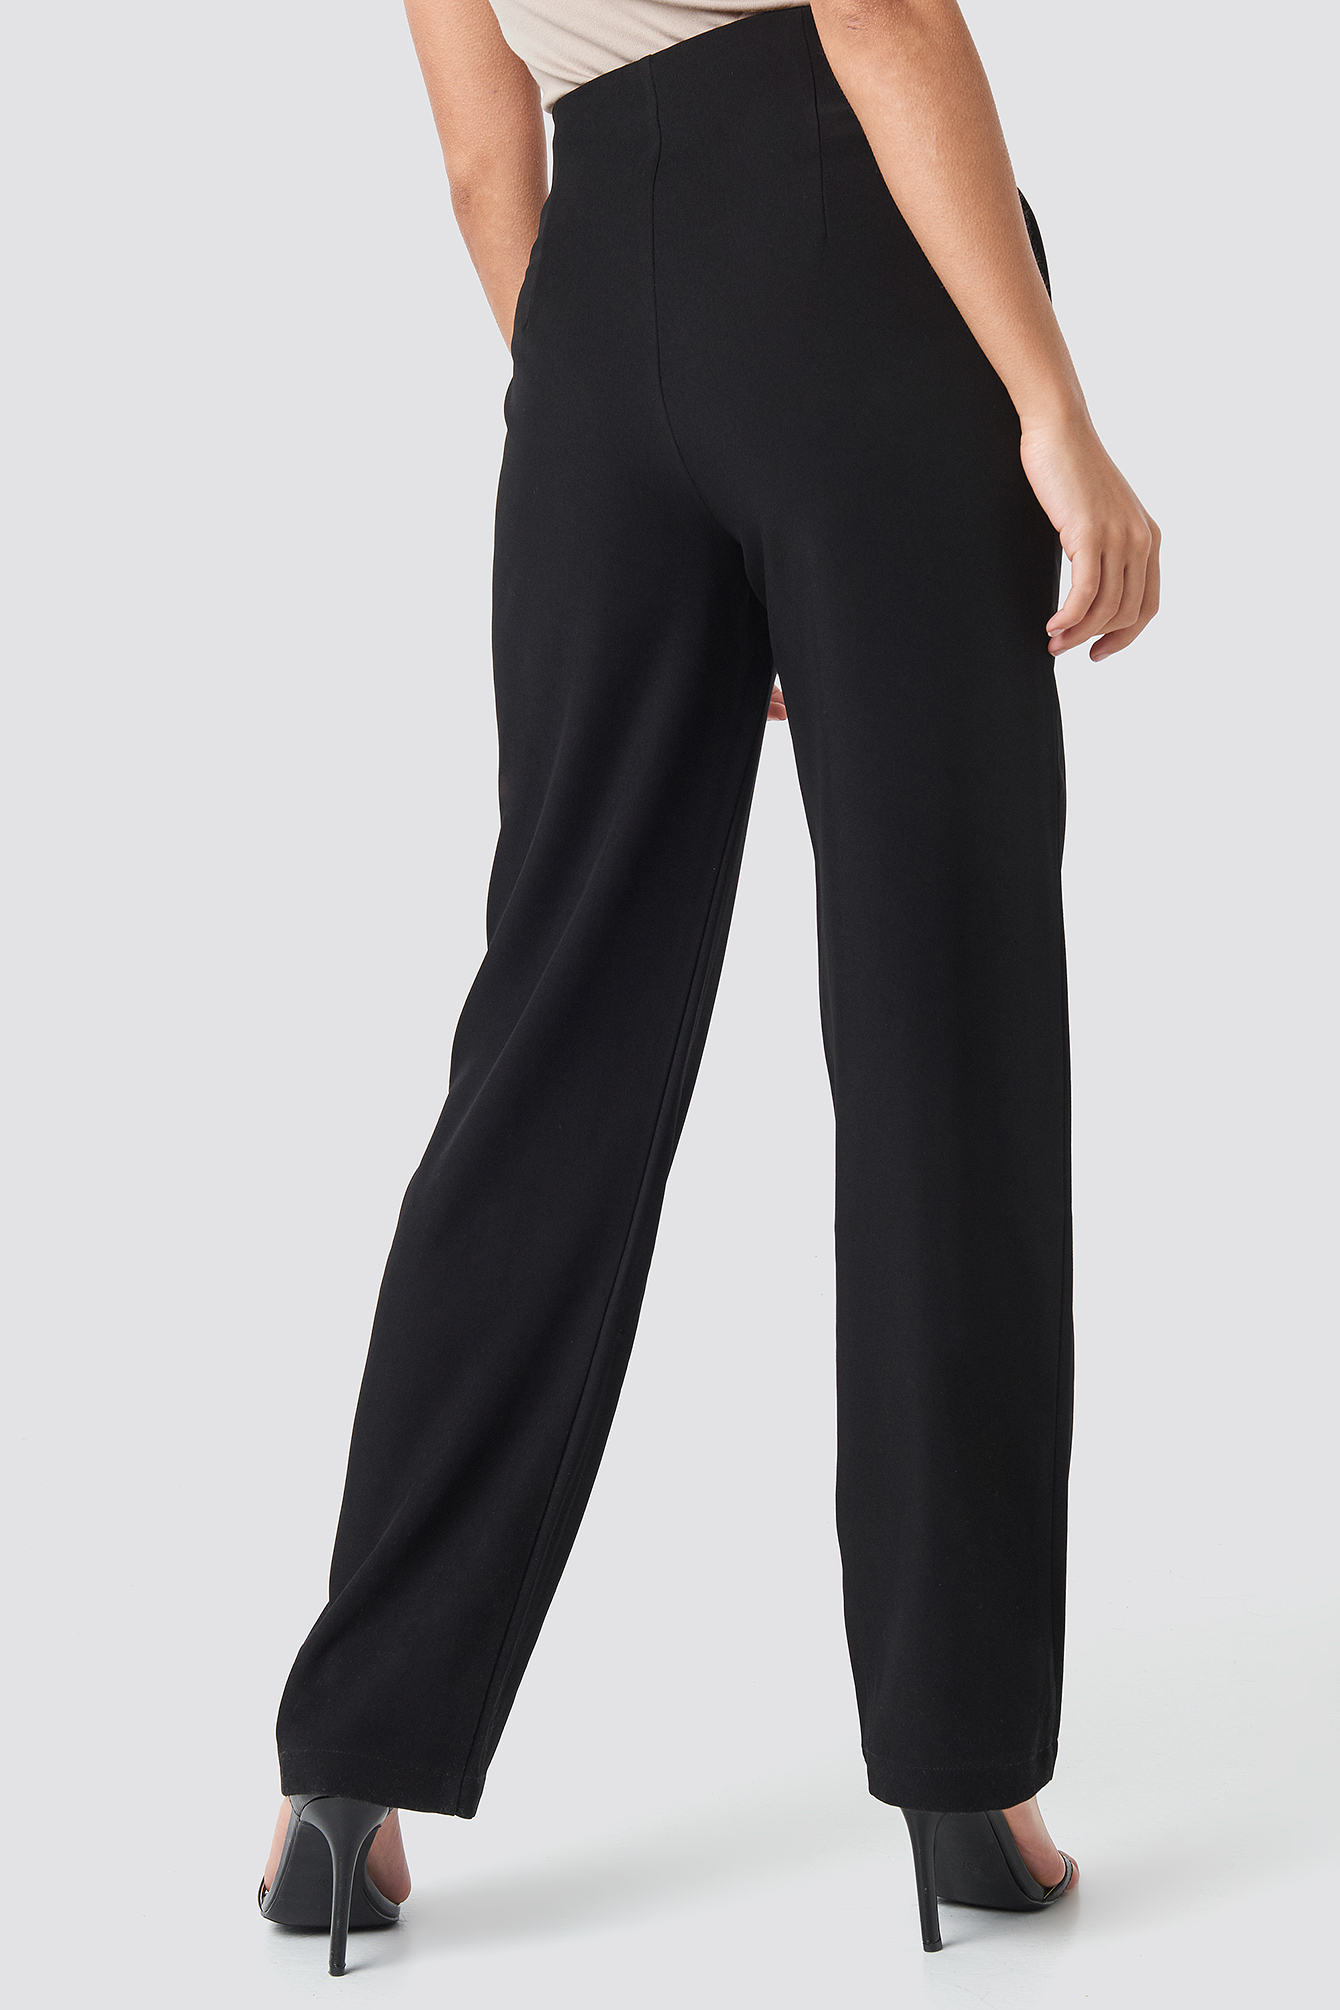 Pleated Buttoned Suit Pants NA-KD.COM